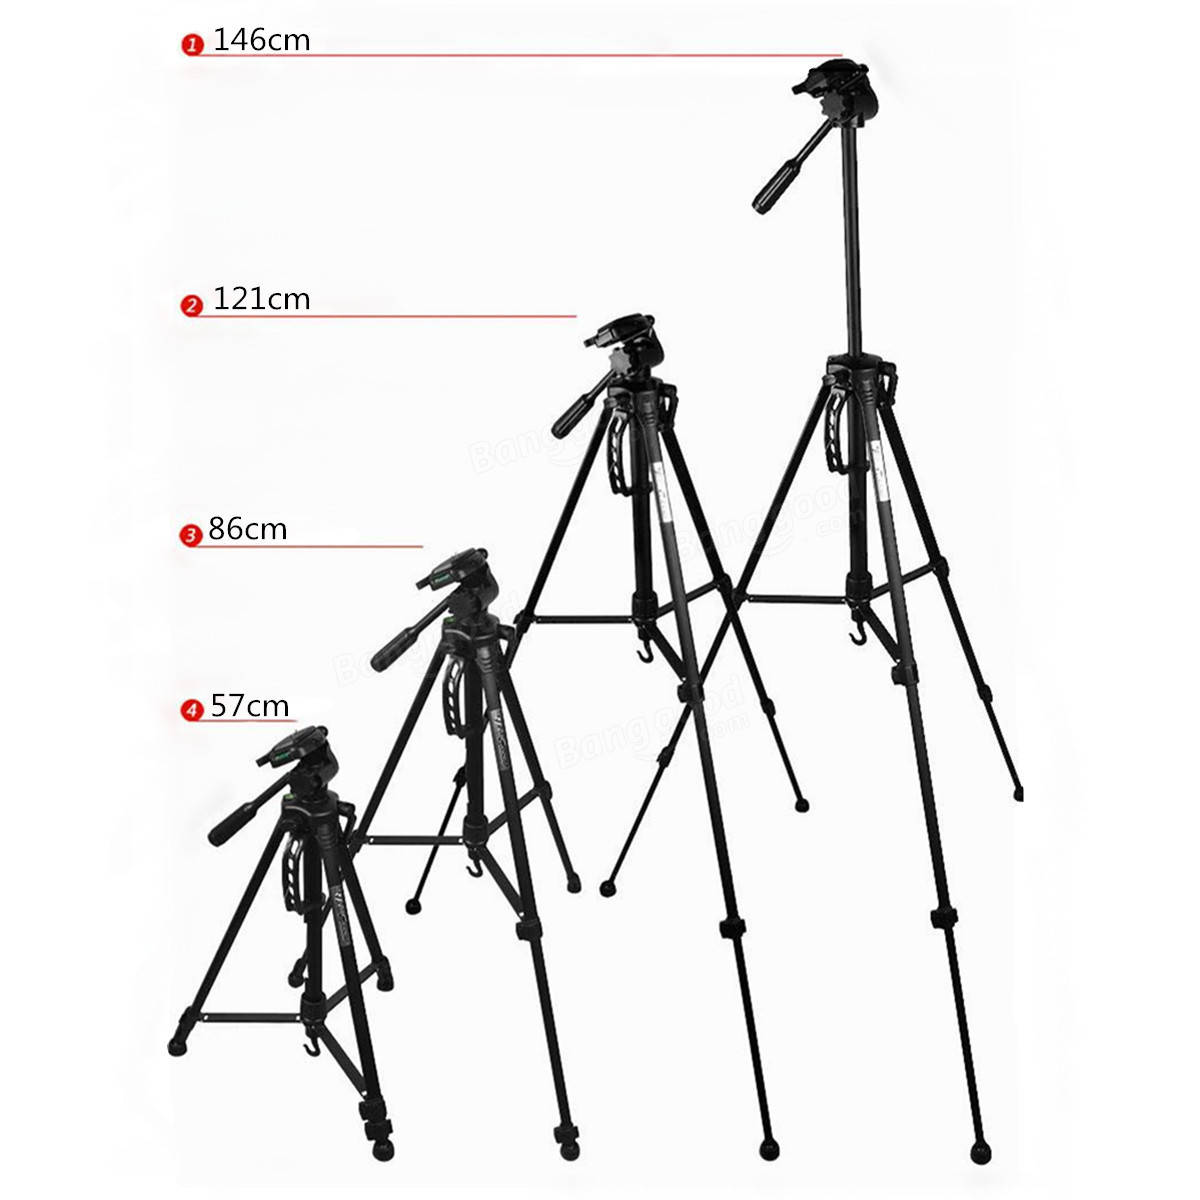 Weifeng WT-3530 Tripod Stand With Carry Case For Digital